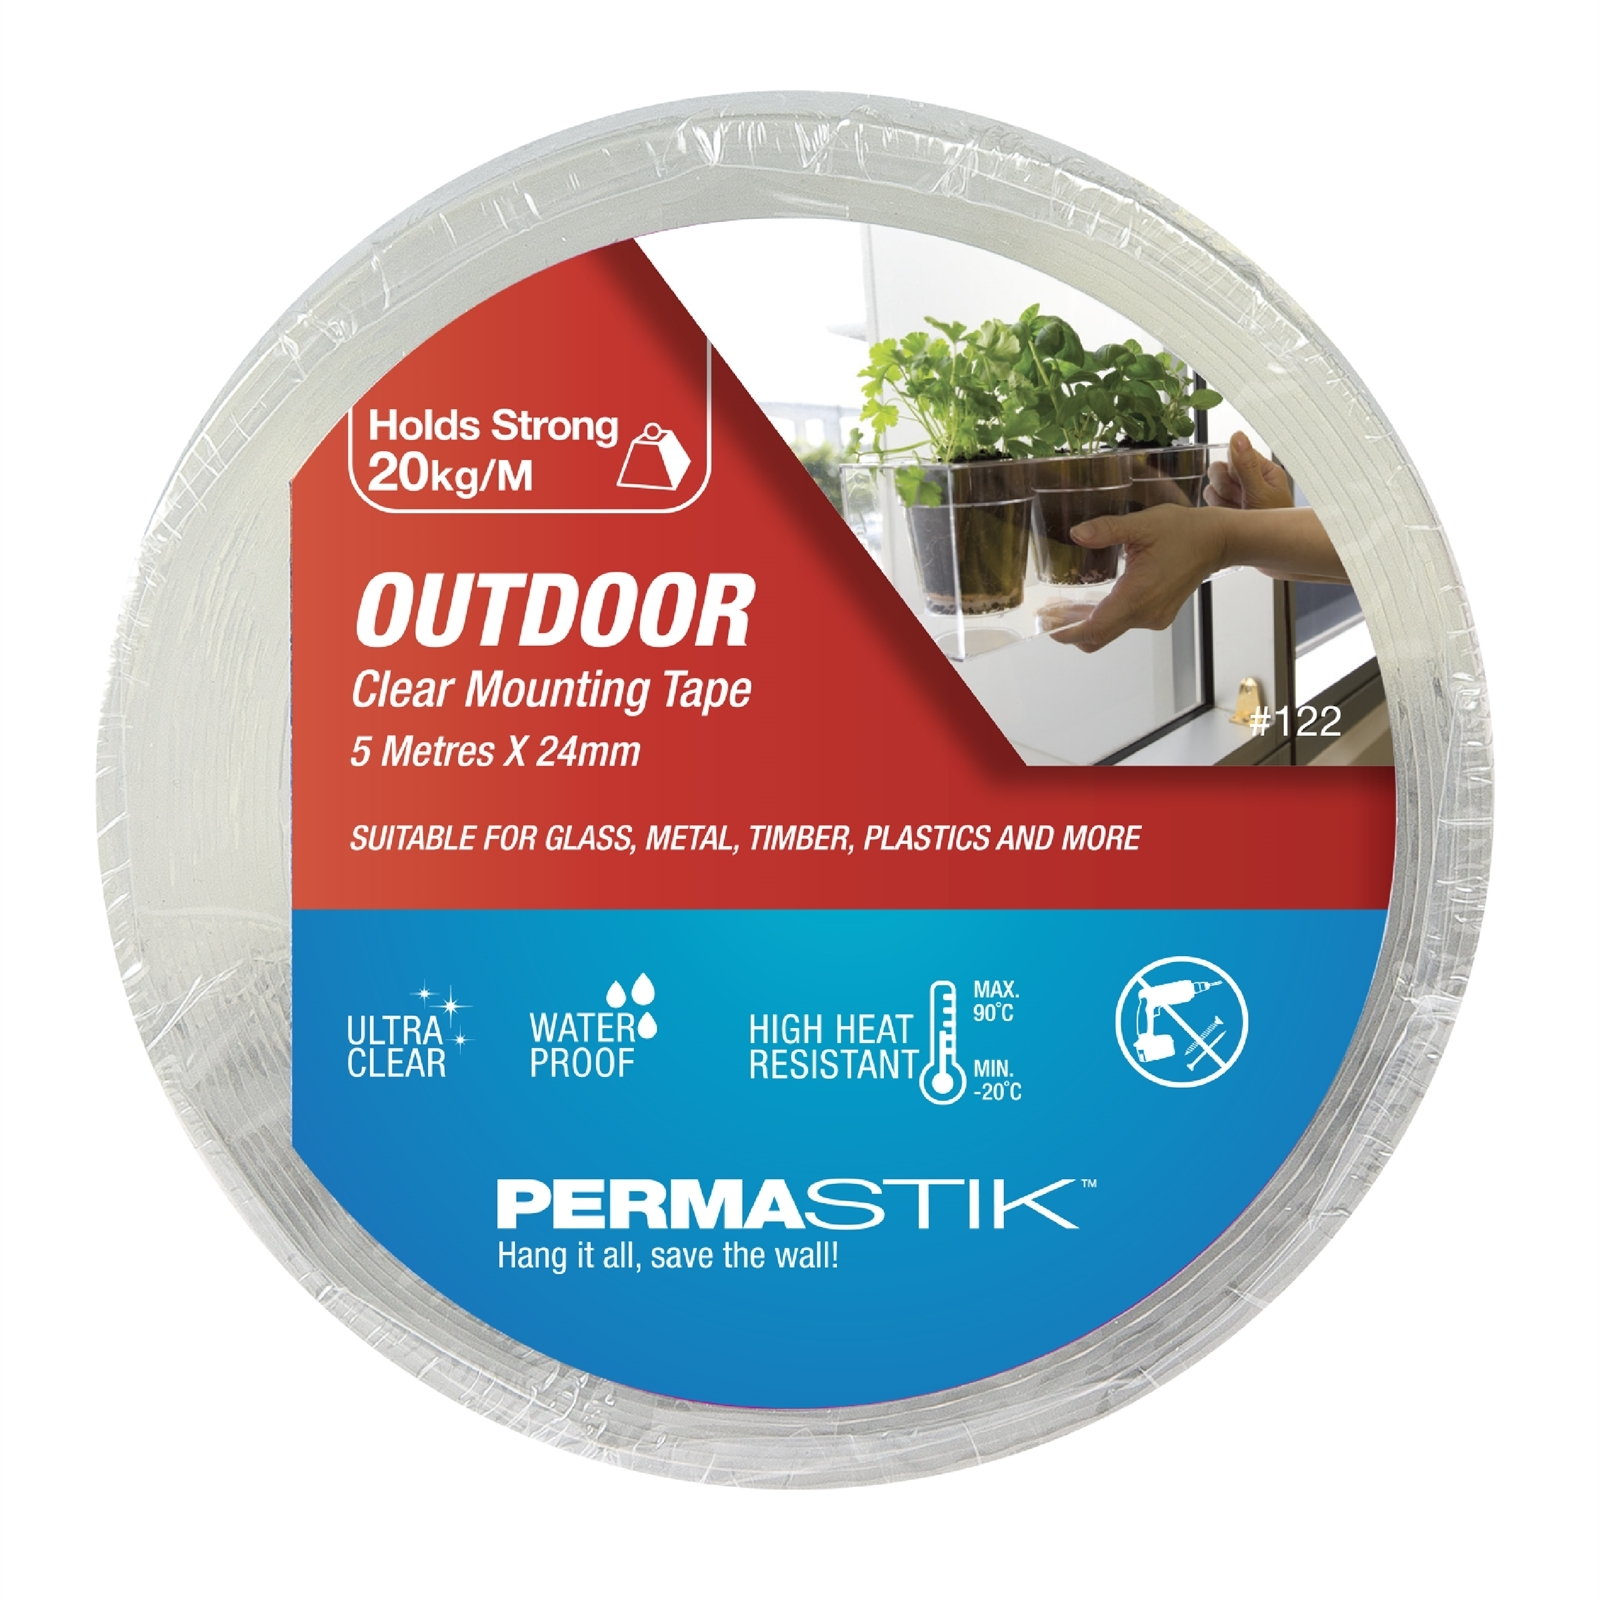 Permastik 5m x 24mm Clear Outdoor Mounting Tape